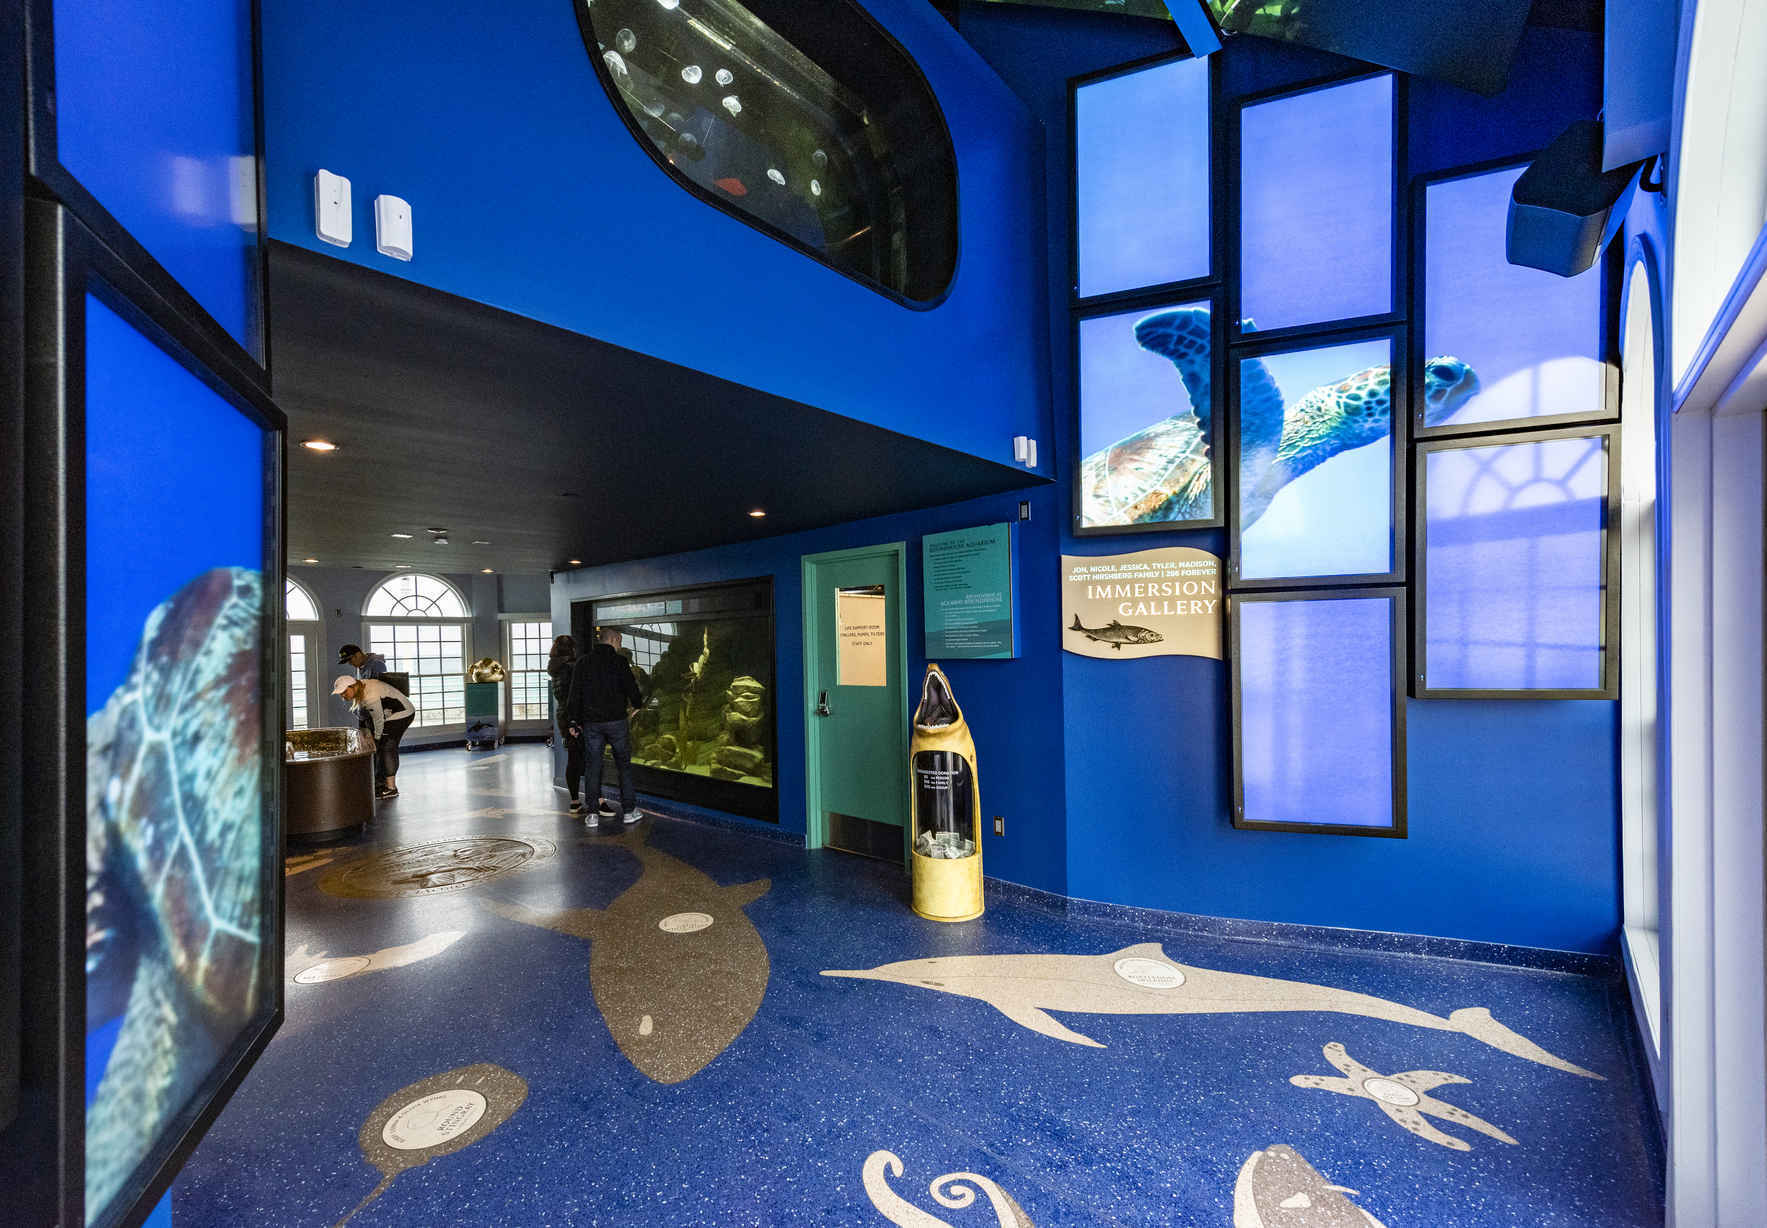 July 7 - Reserve your free entry to the Roundhouse Aquarium image